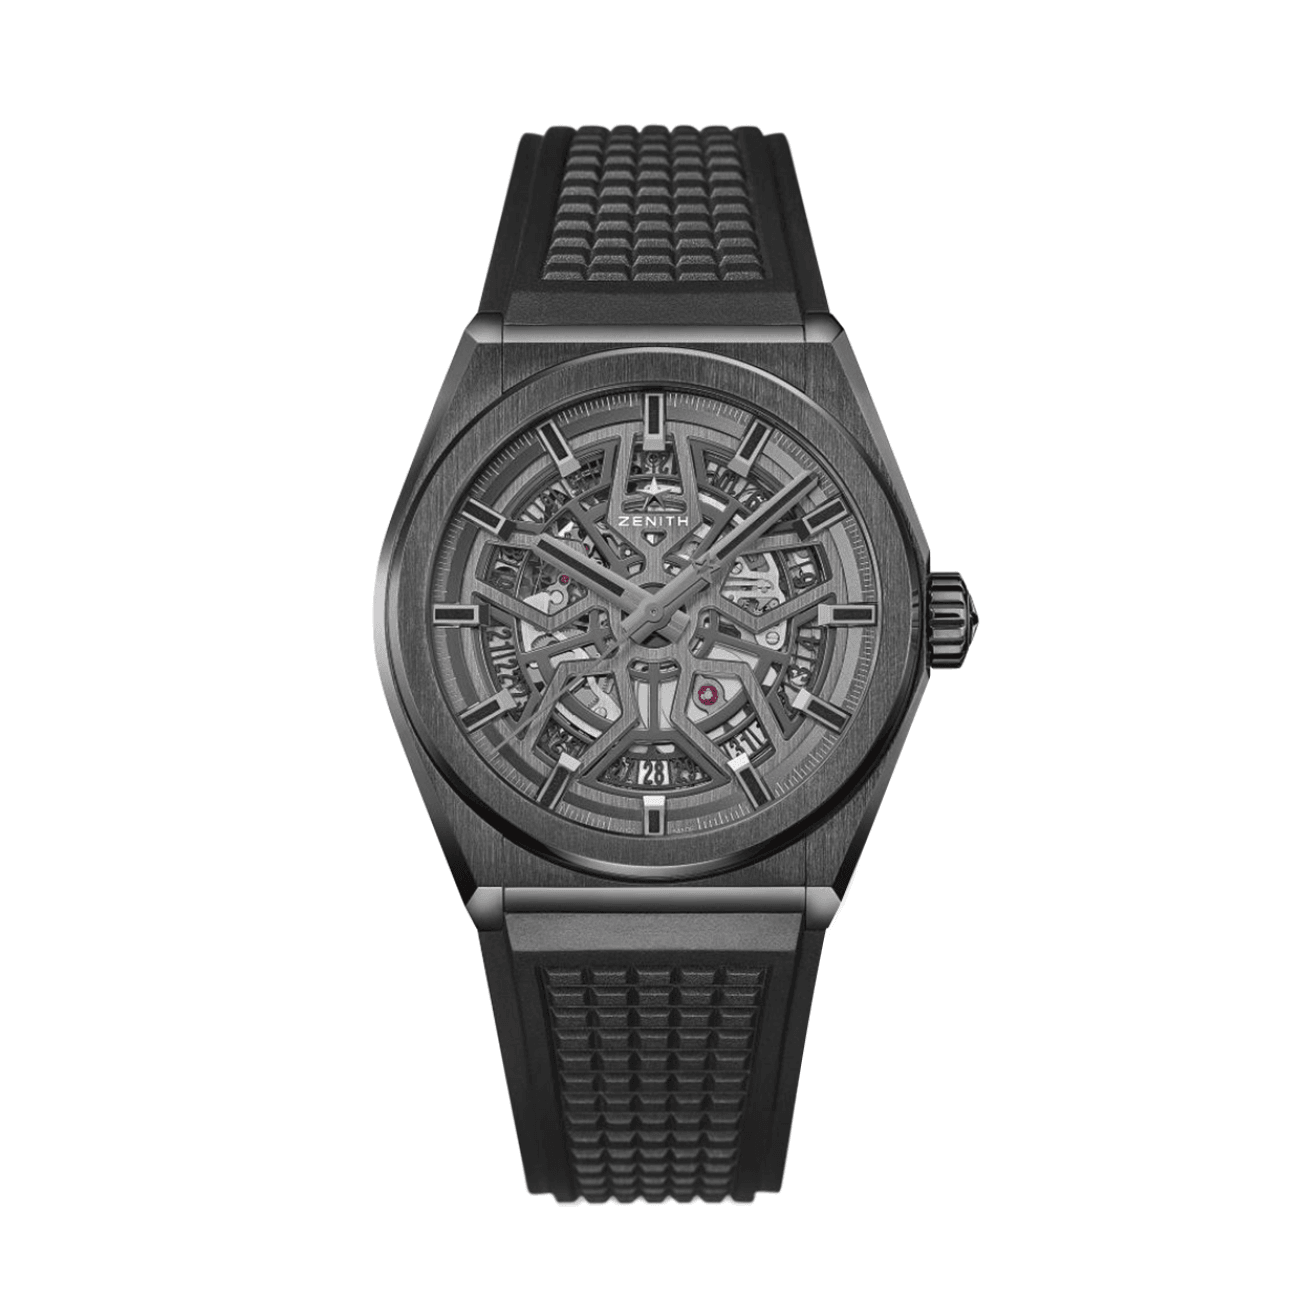 Zenith Watches - DEFY CLASSIC | Manfredi Jewels